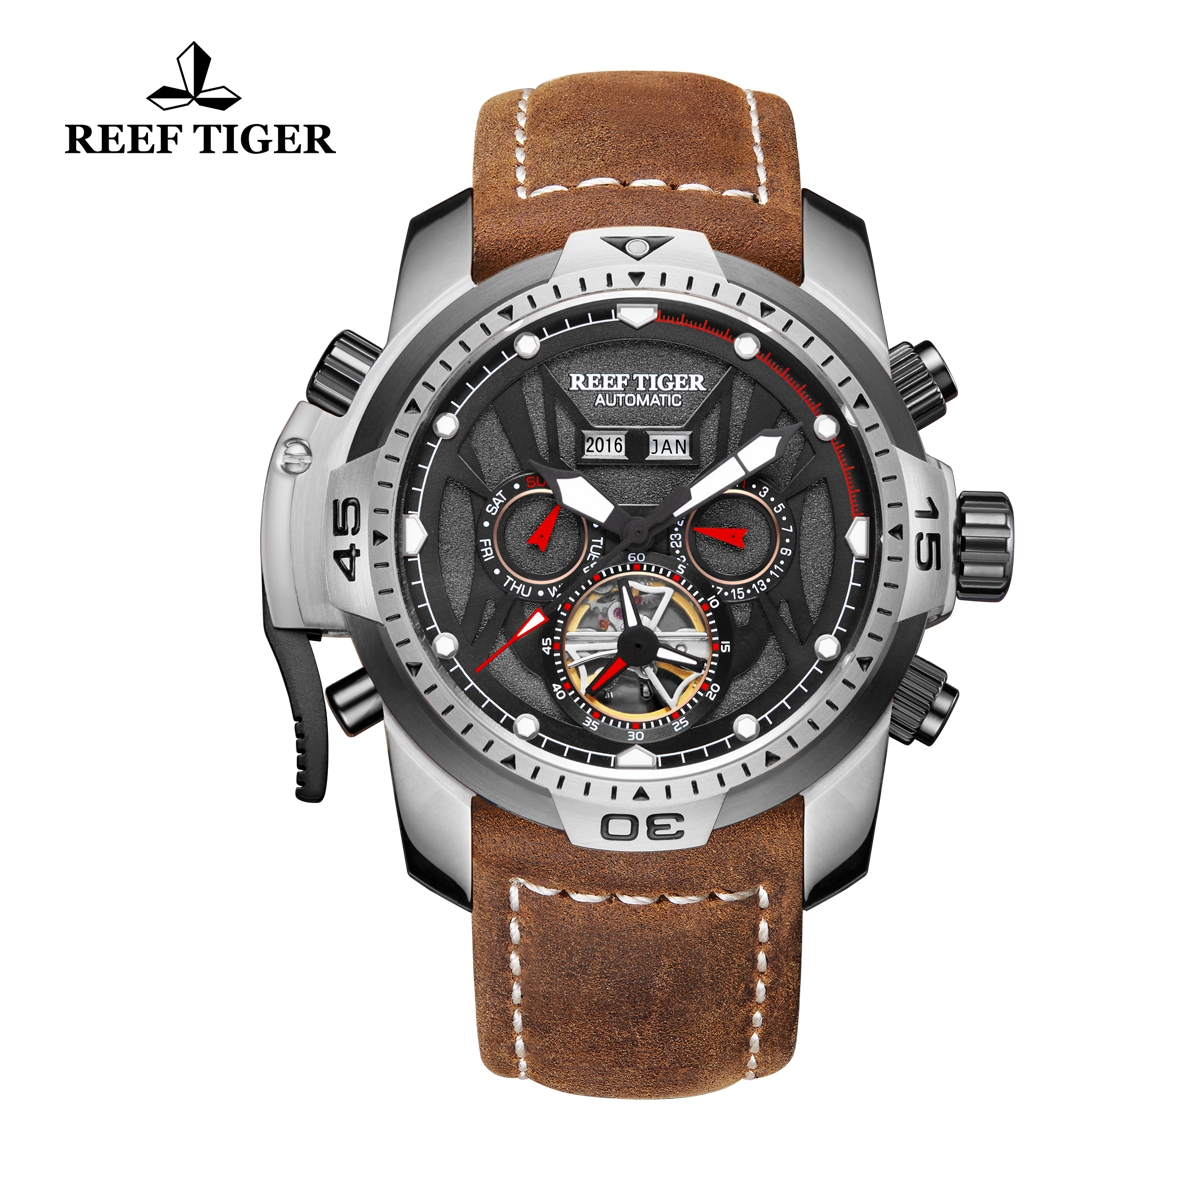 Reef Tiger Transformer Sport Watches Complicated Watch Steel Case Brown Leather Strap RGA3532-YBSR